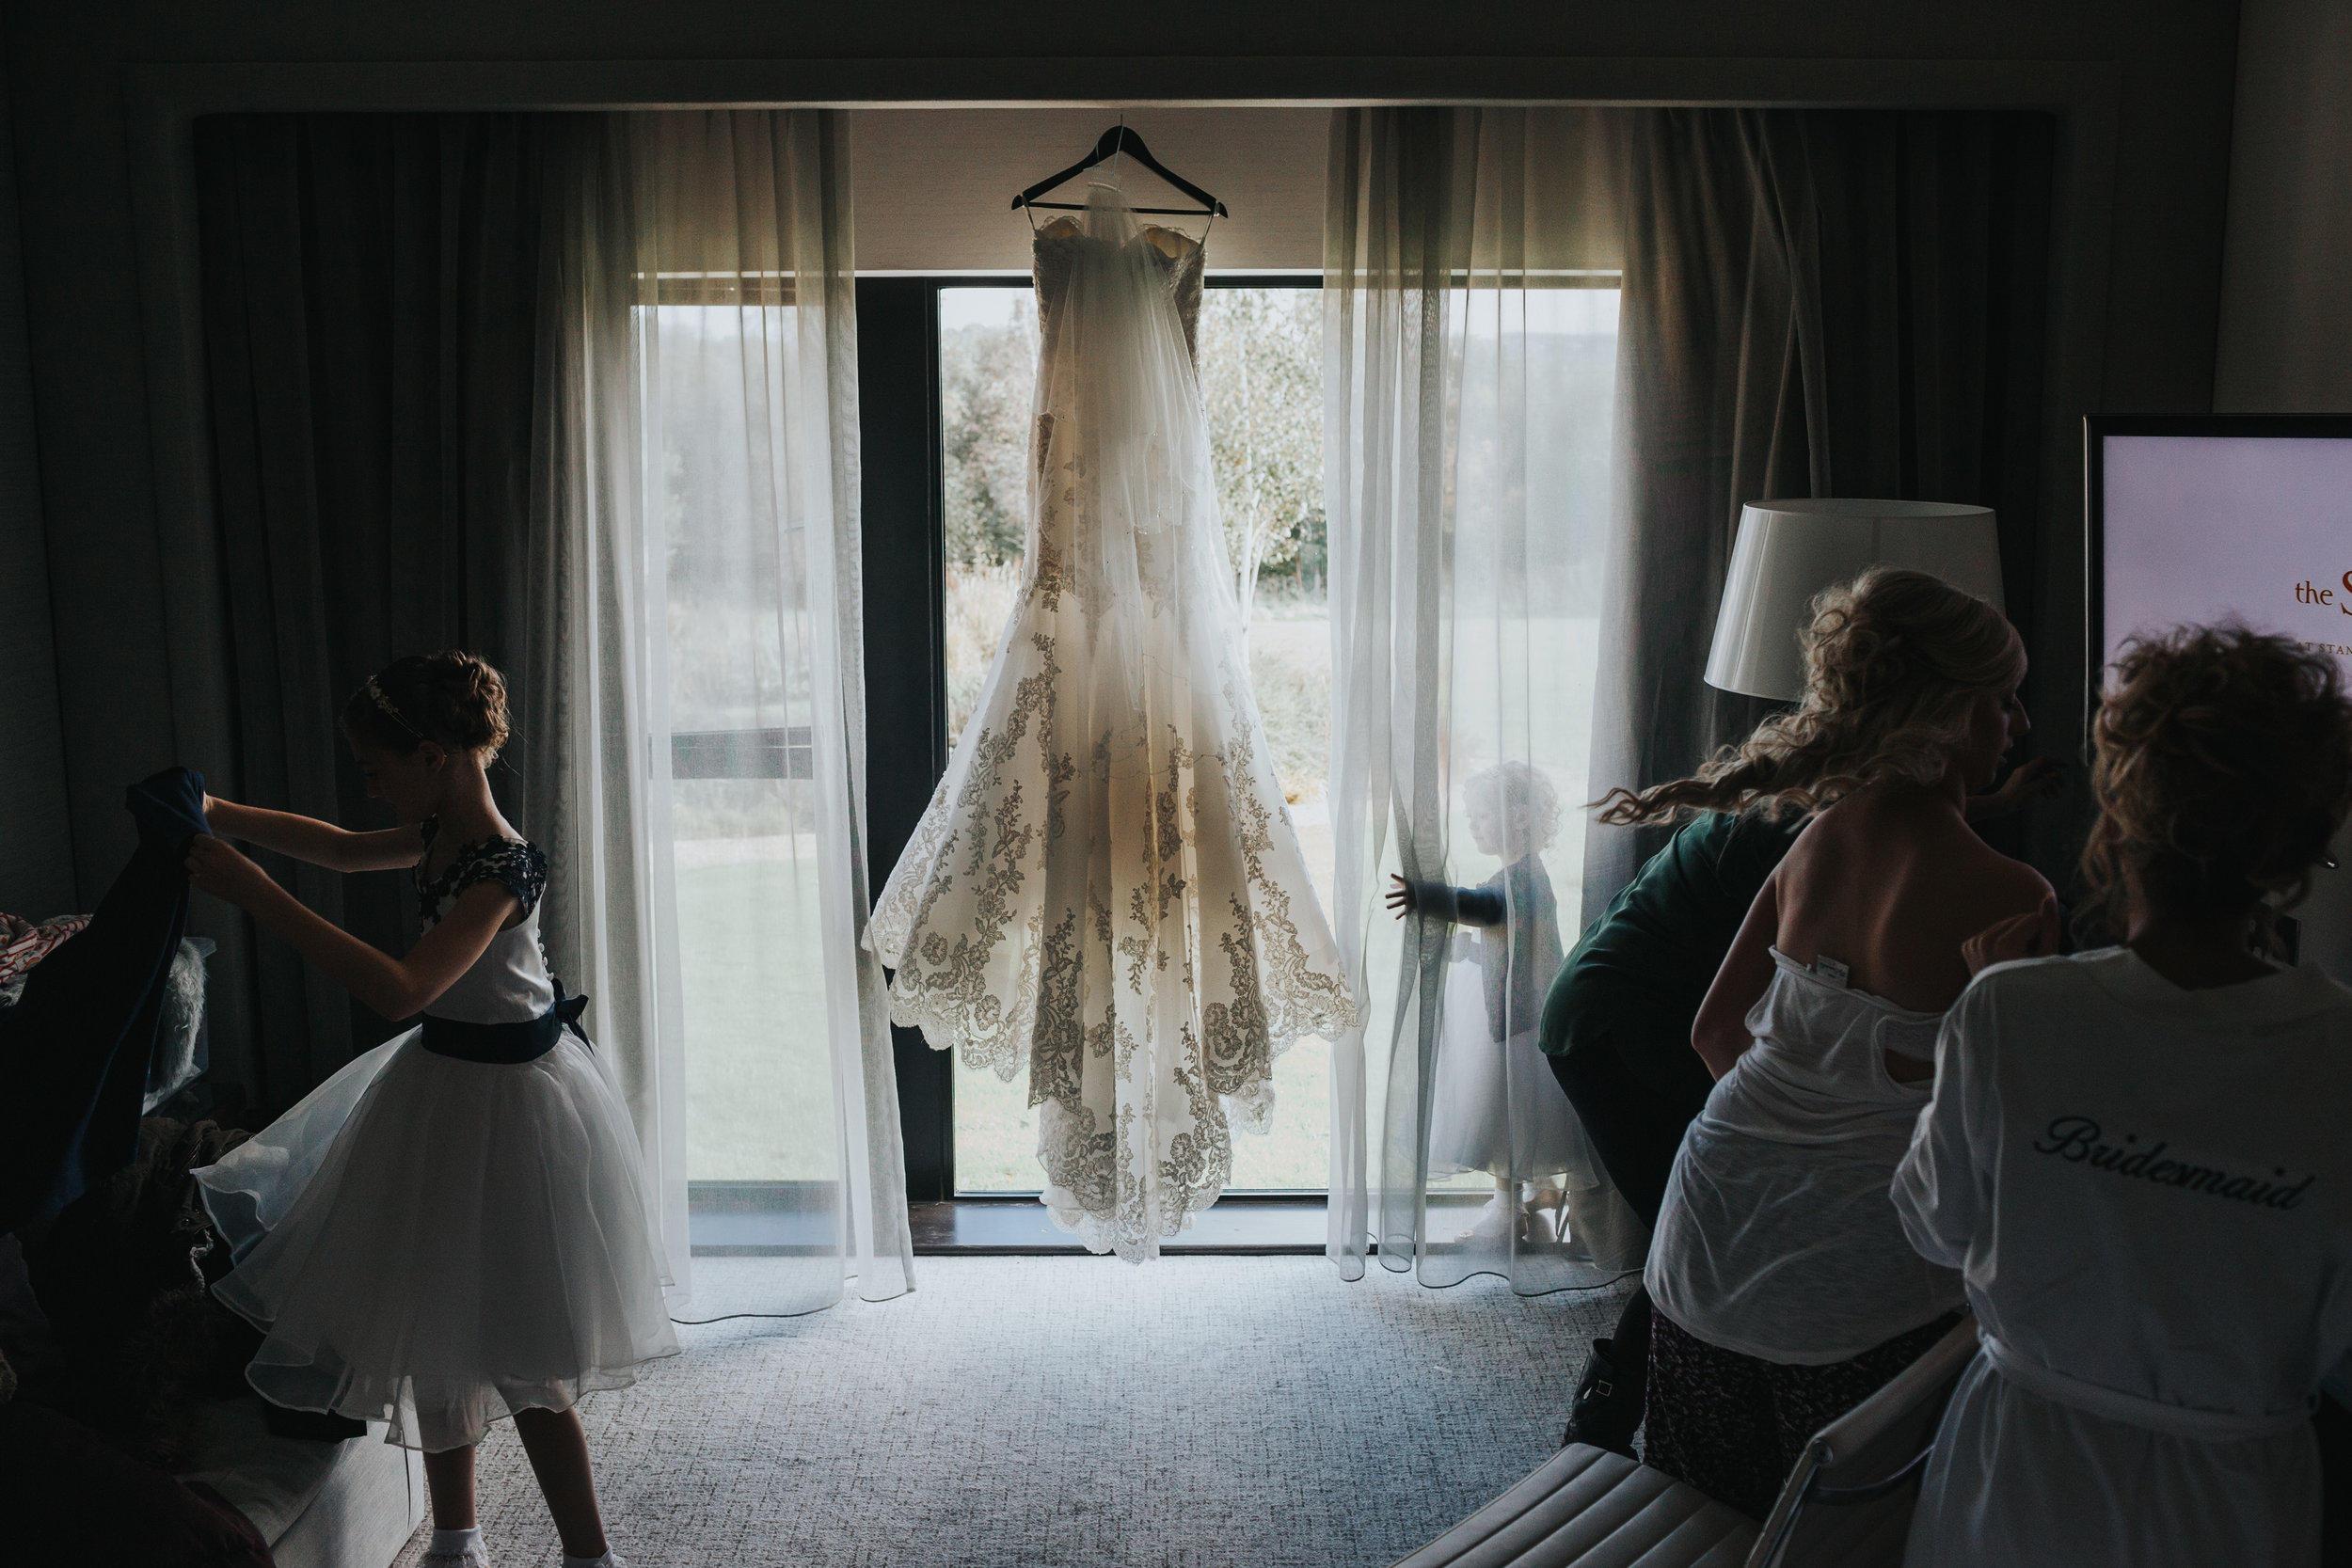 Dress hangs in back ground as bridal party continue to get ready in the shadows.